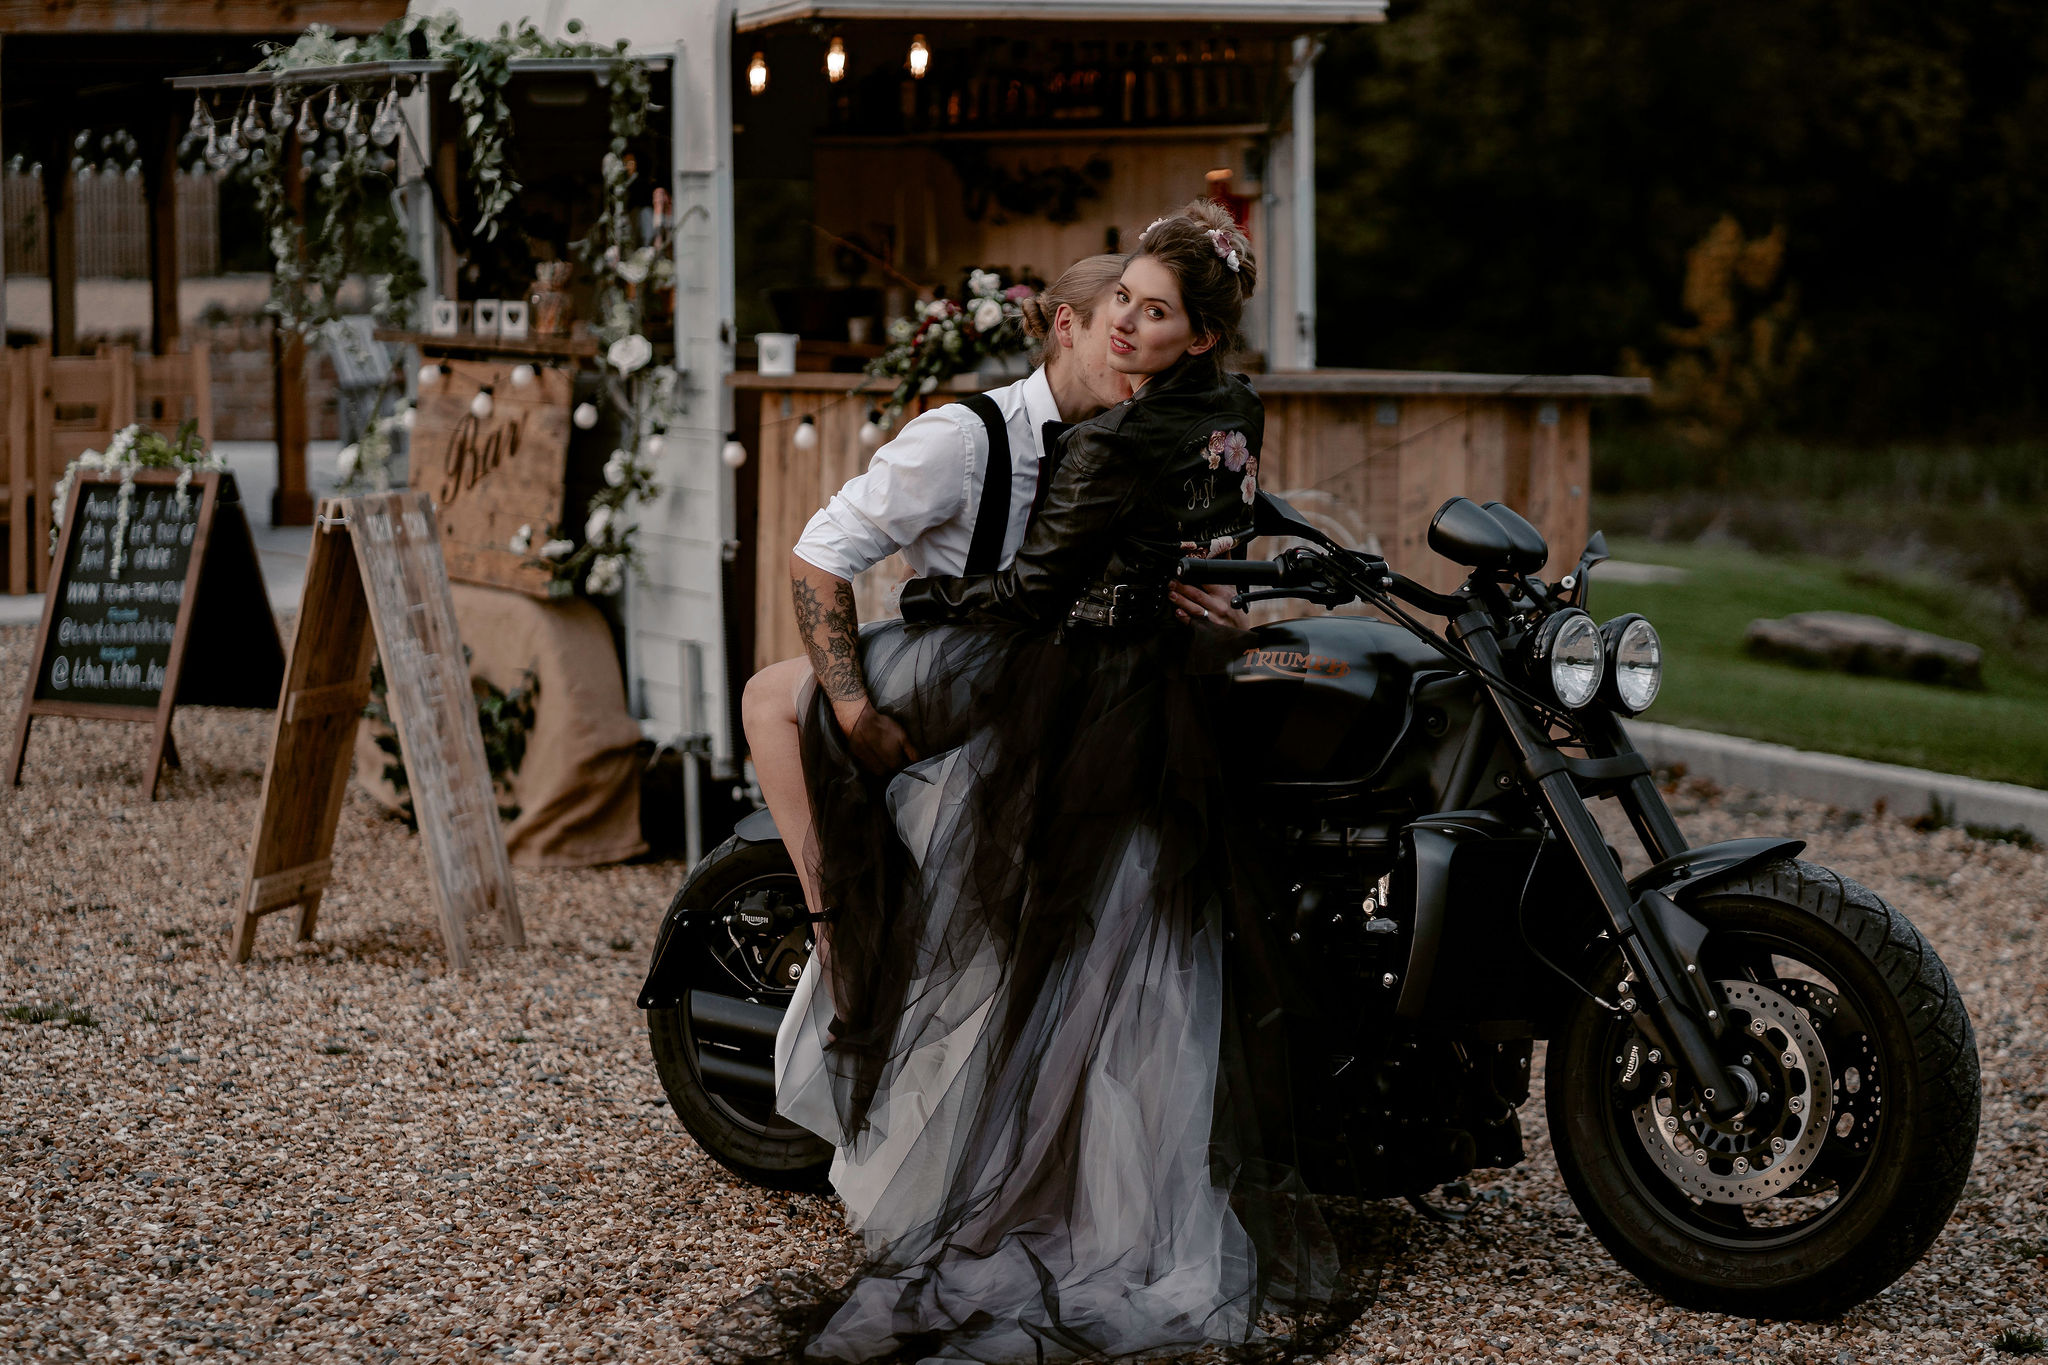 Ryley and Flynn - alternative wedding dress - black and white wedding dress on motorbike - awesome black wedding gown